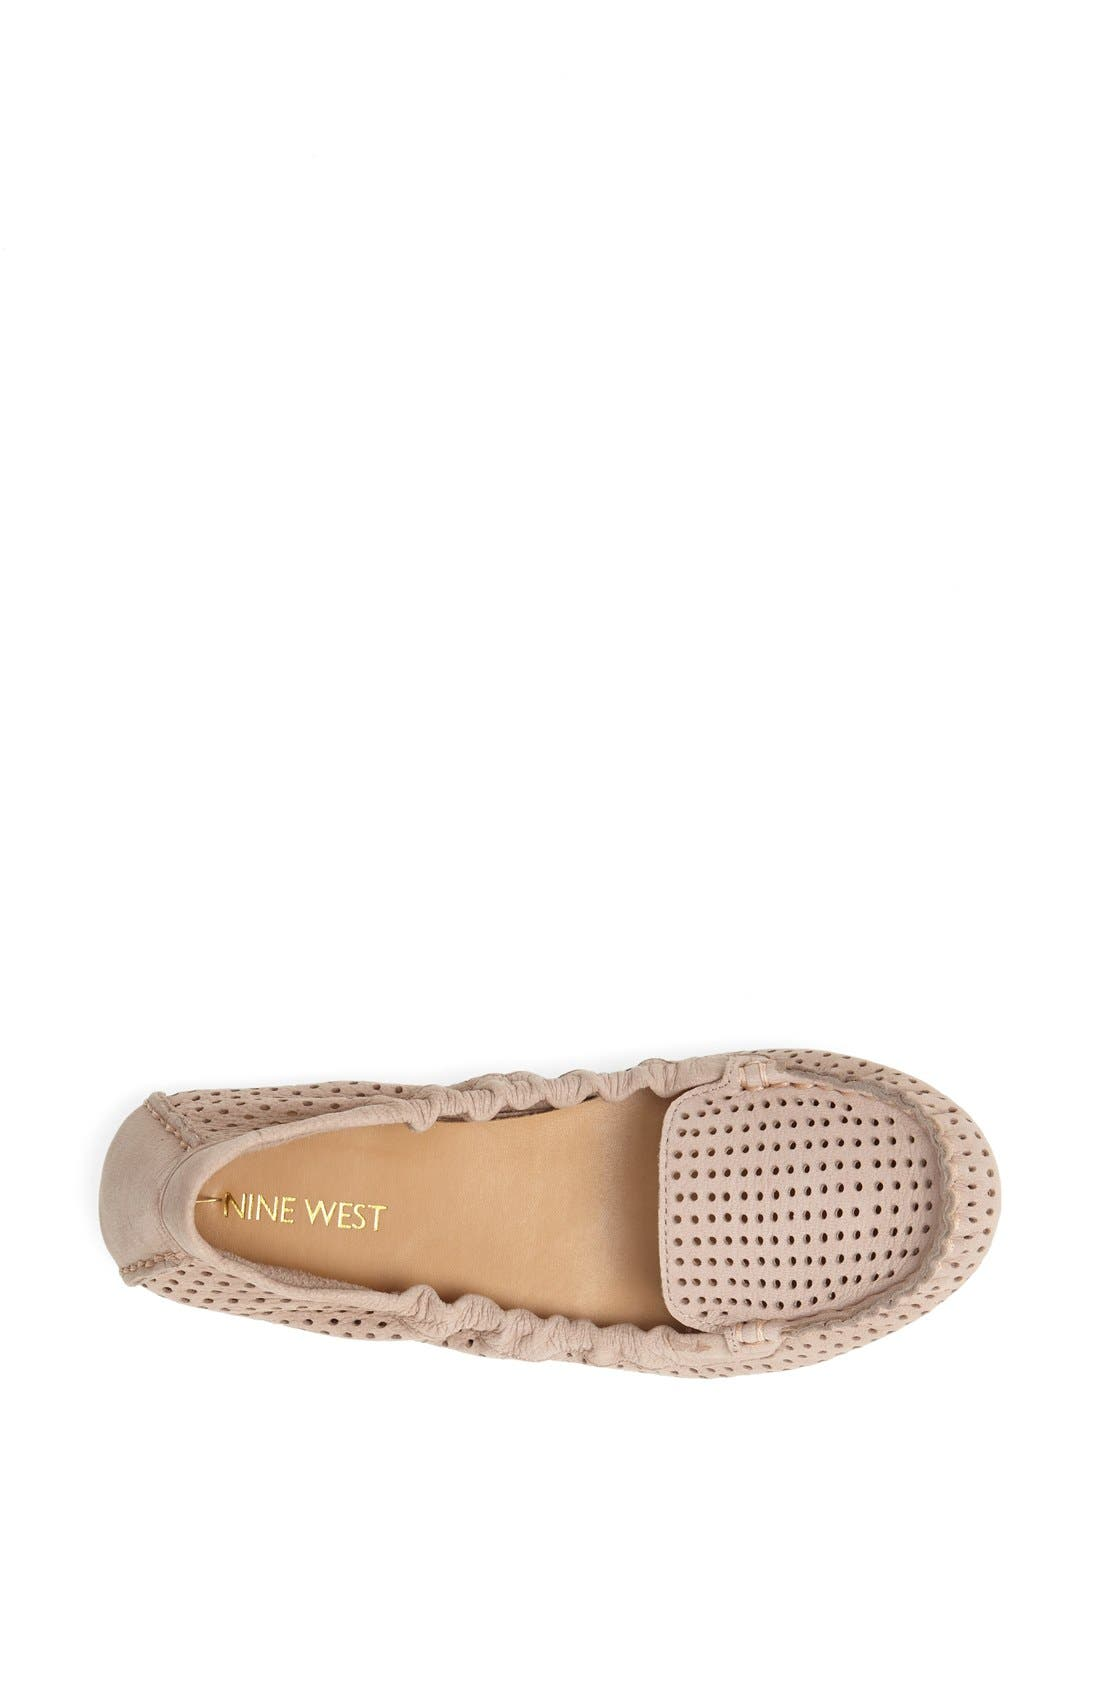 Alternate Image 3  - Nine West 'Teanna' Perforated Nubuck Flat